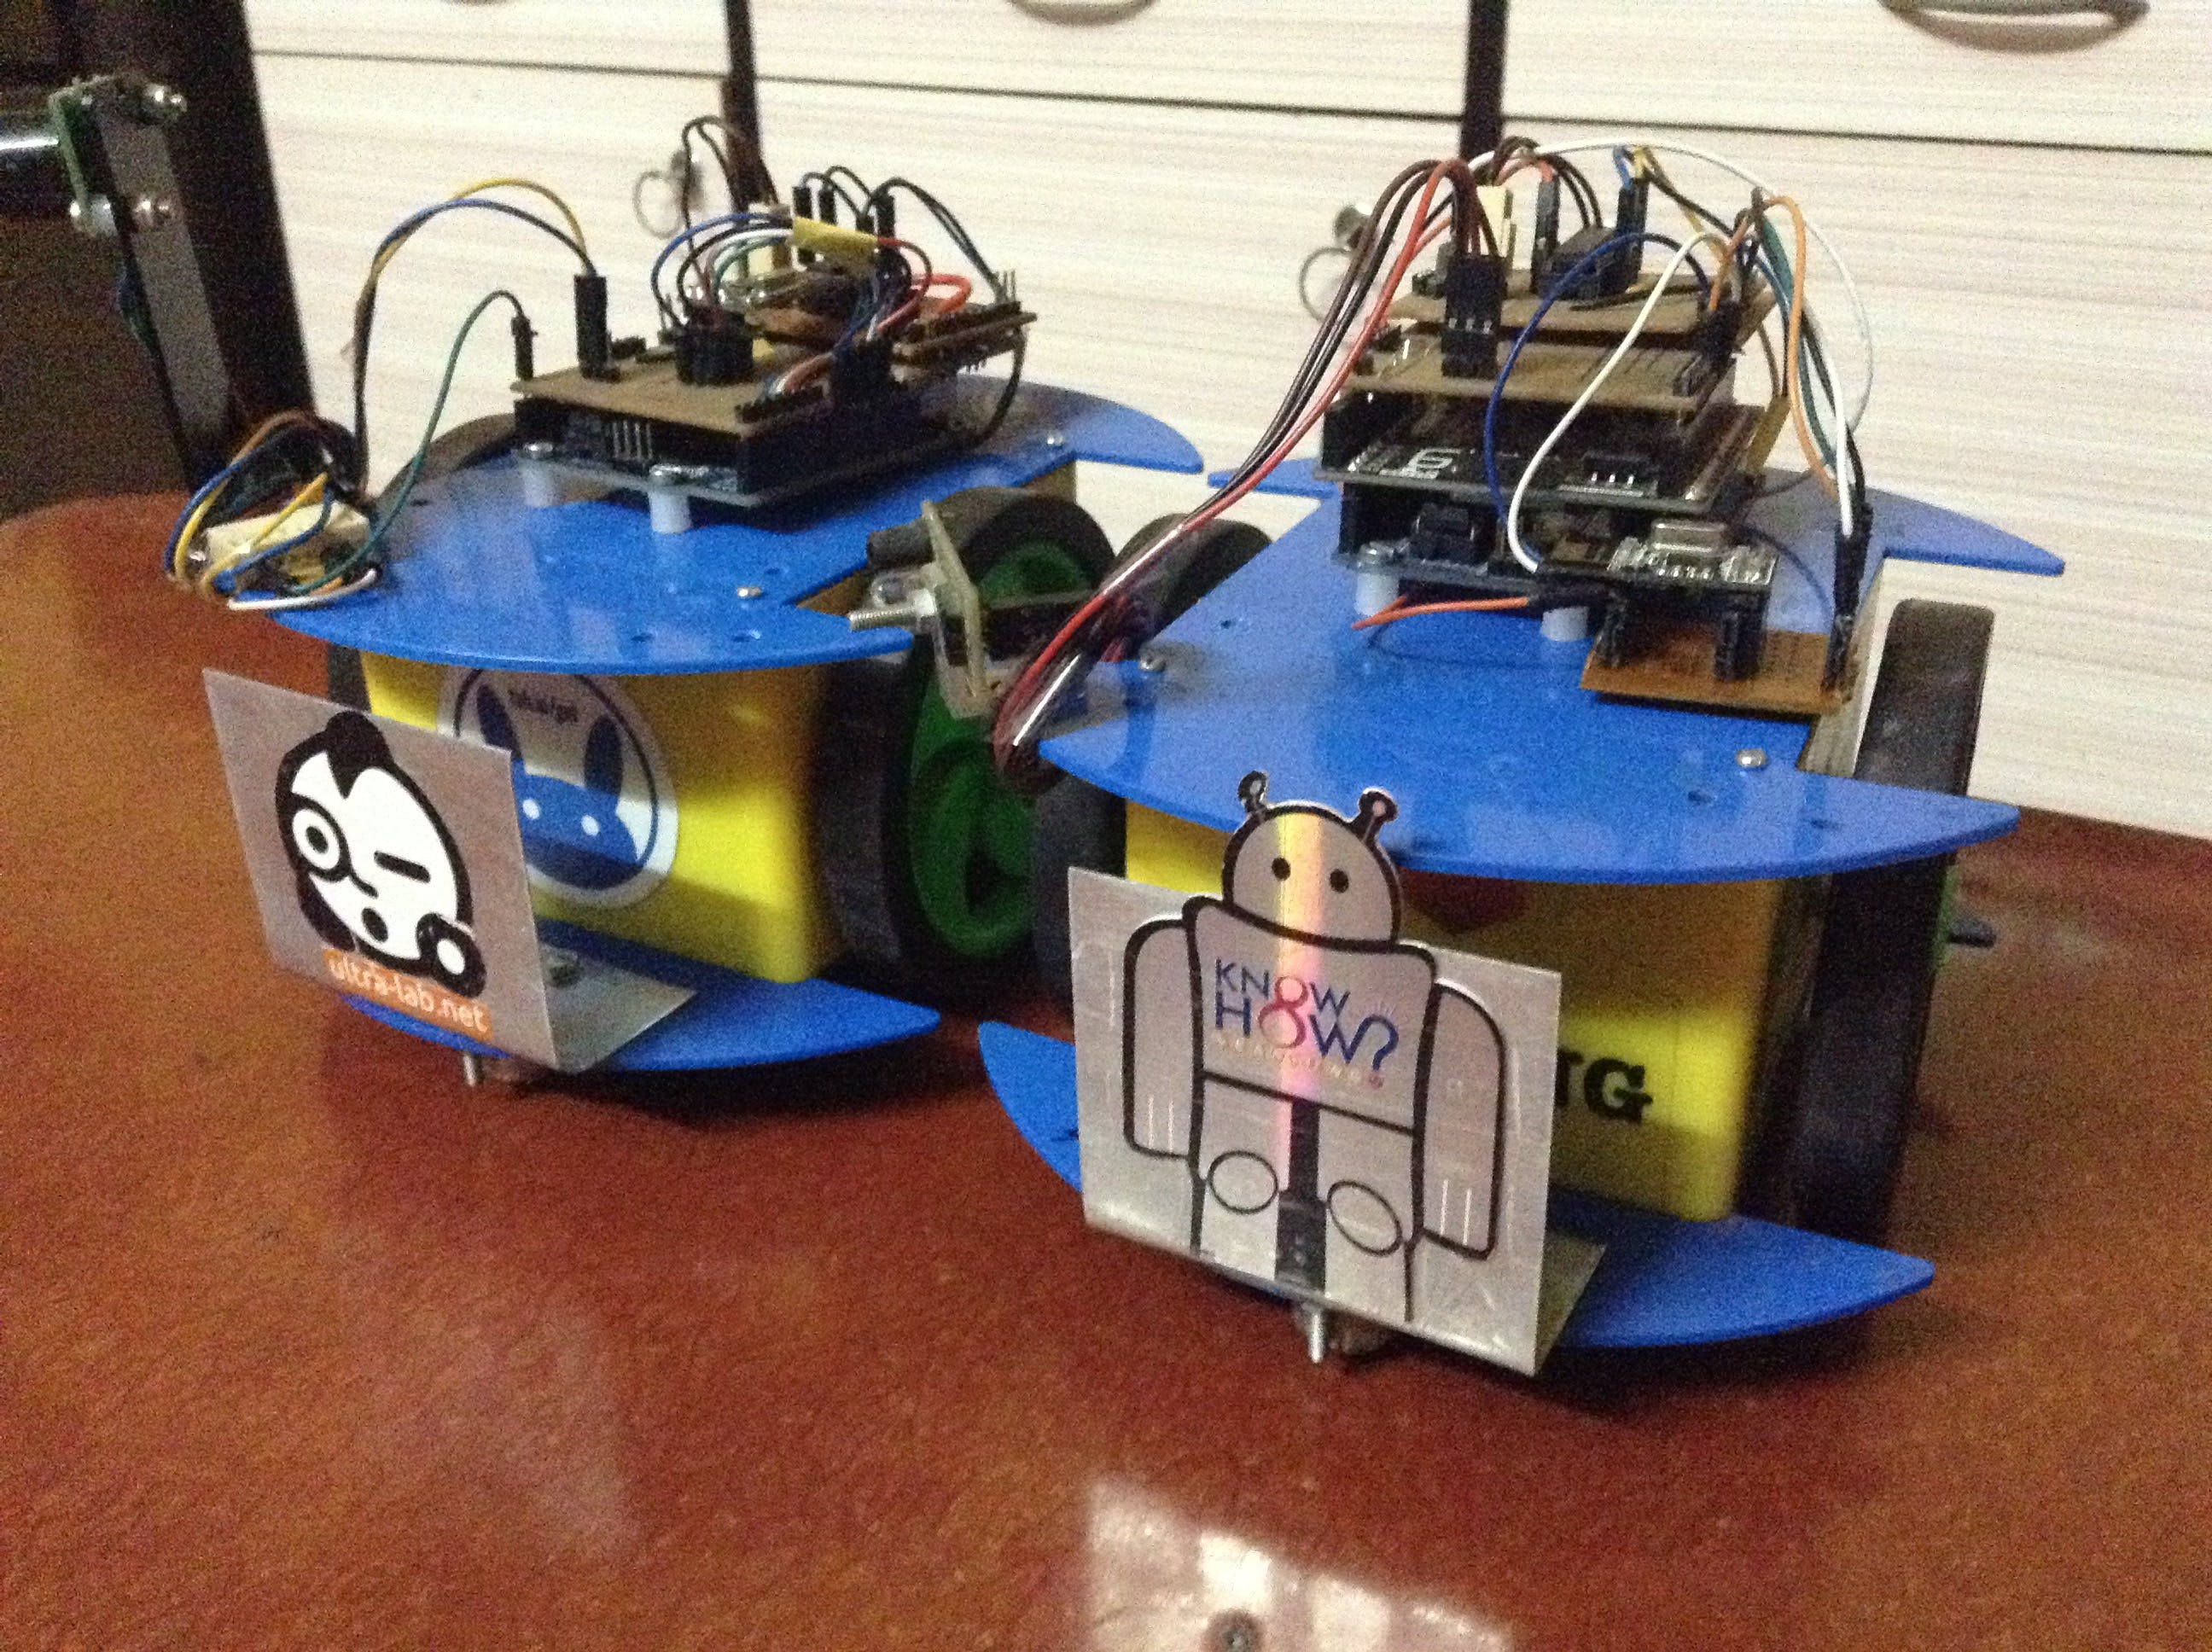 Swarm Bots: Assembly and Co-operative Transport